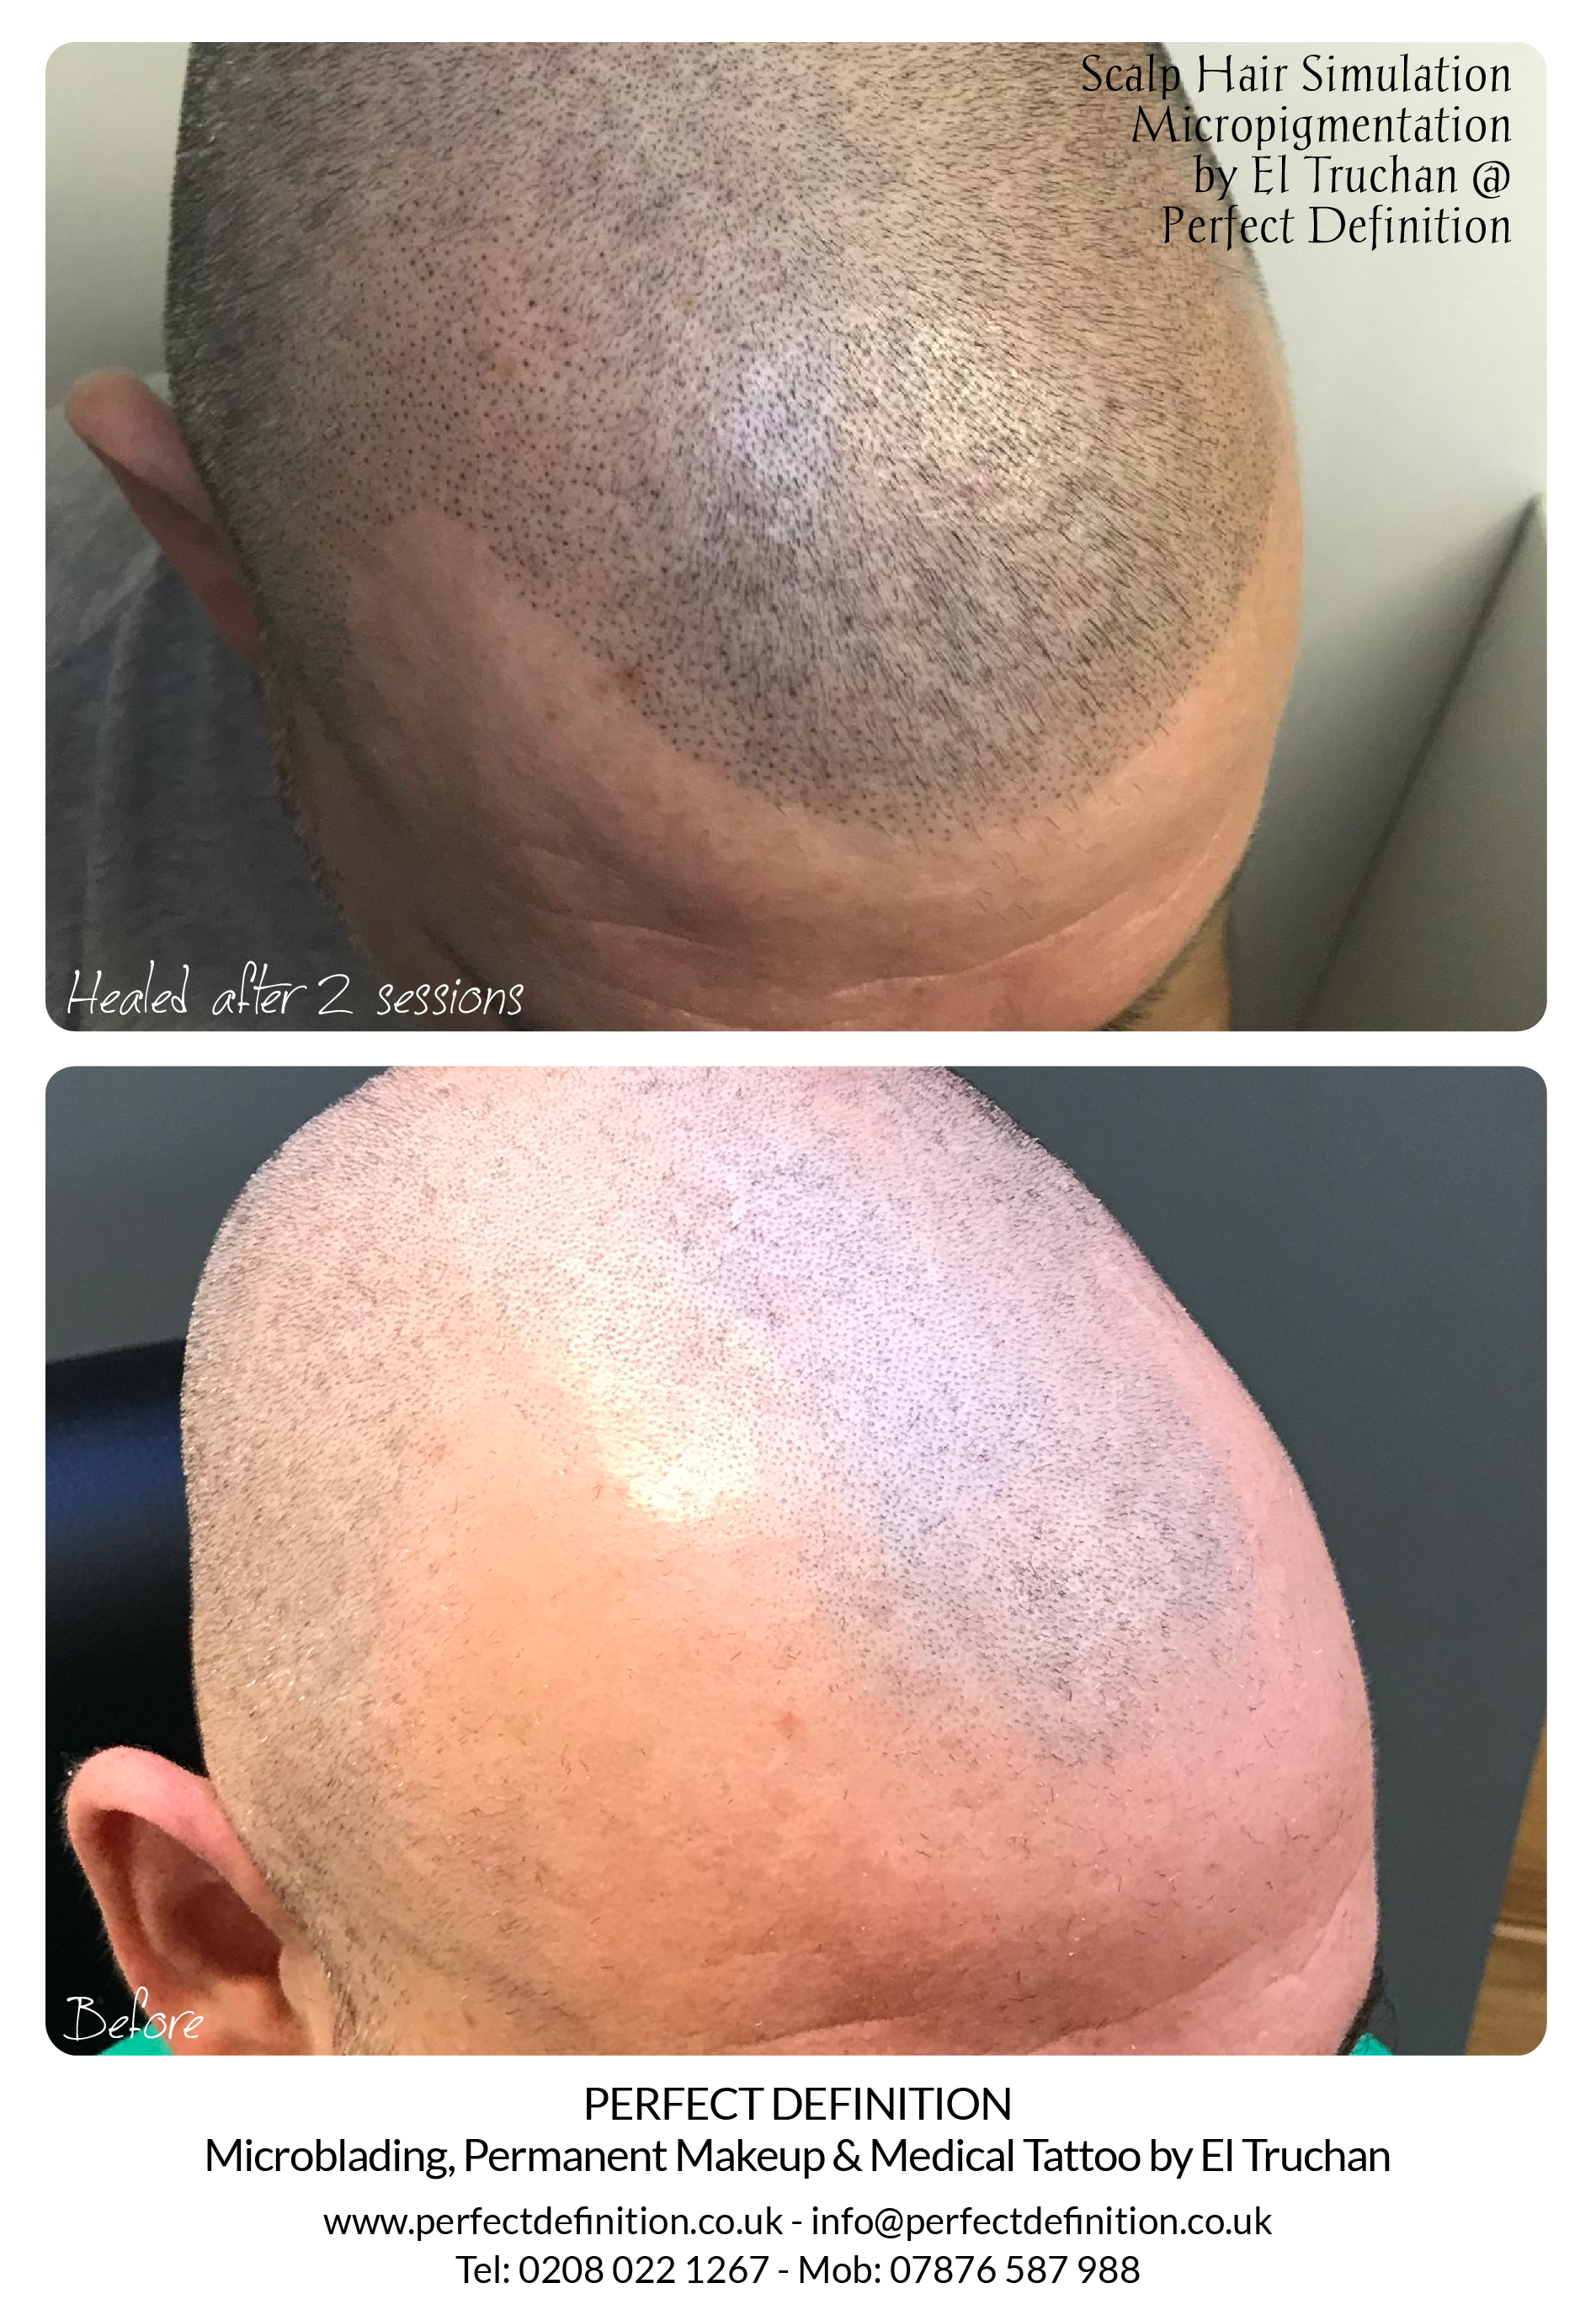 Scalp Hair Simulation Micropigmentation